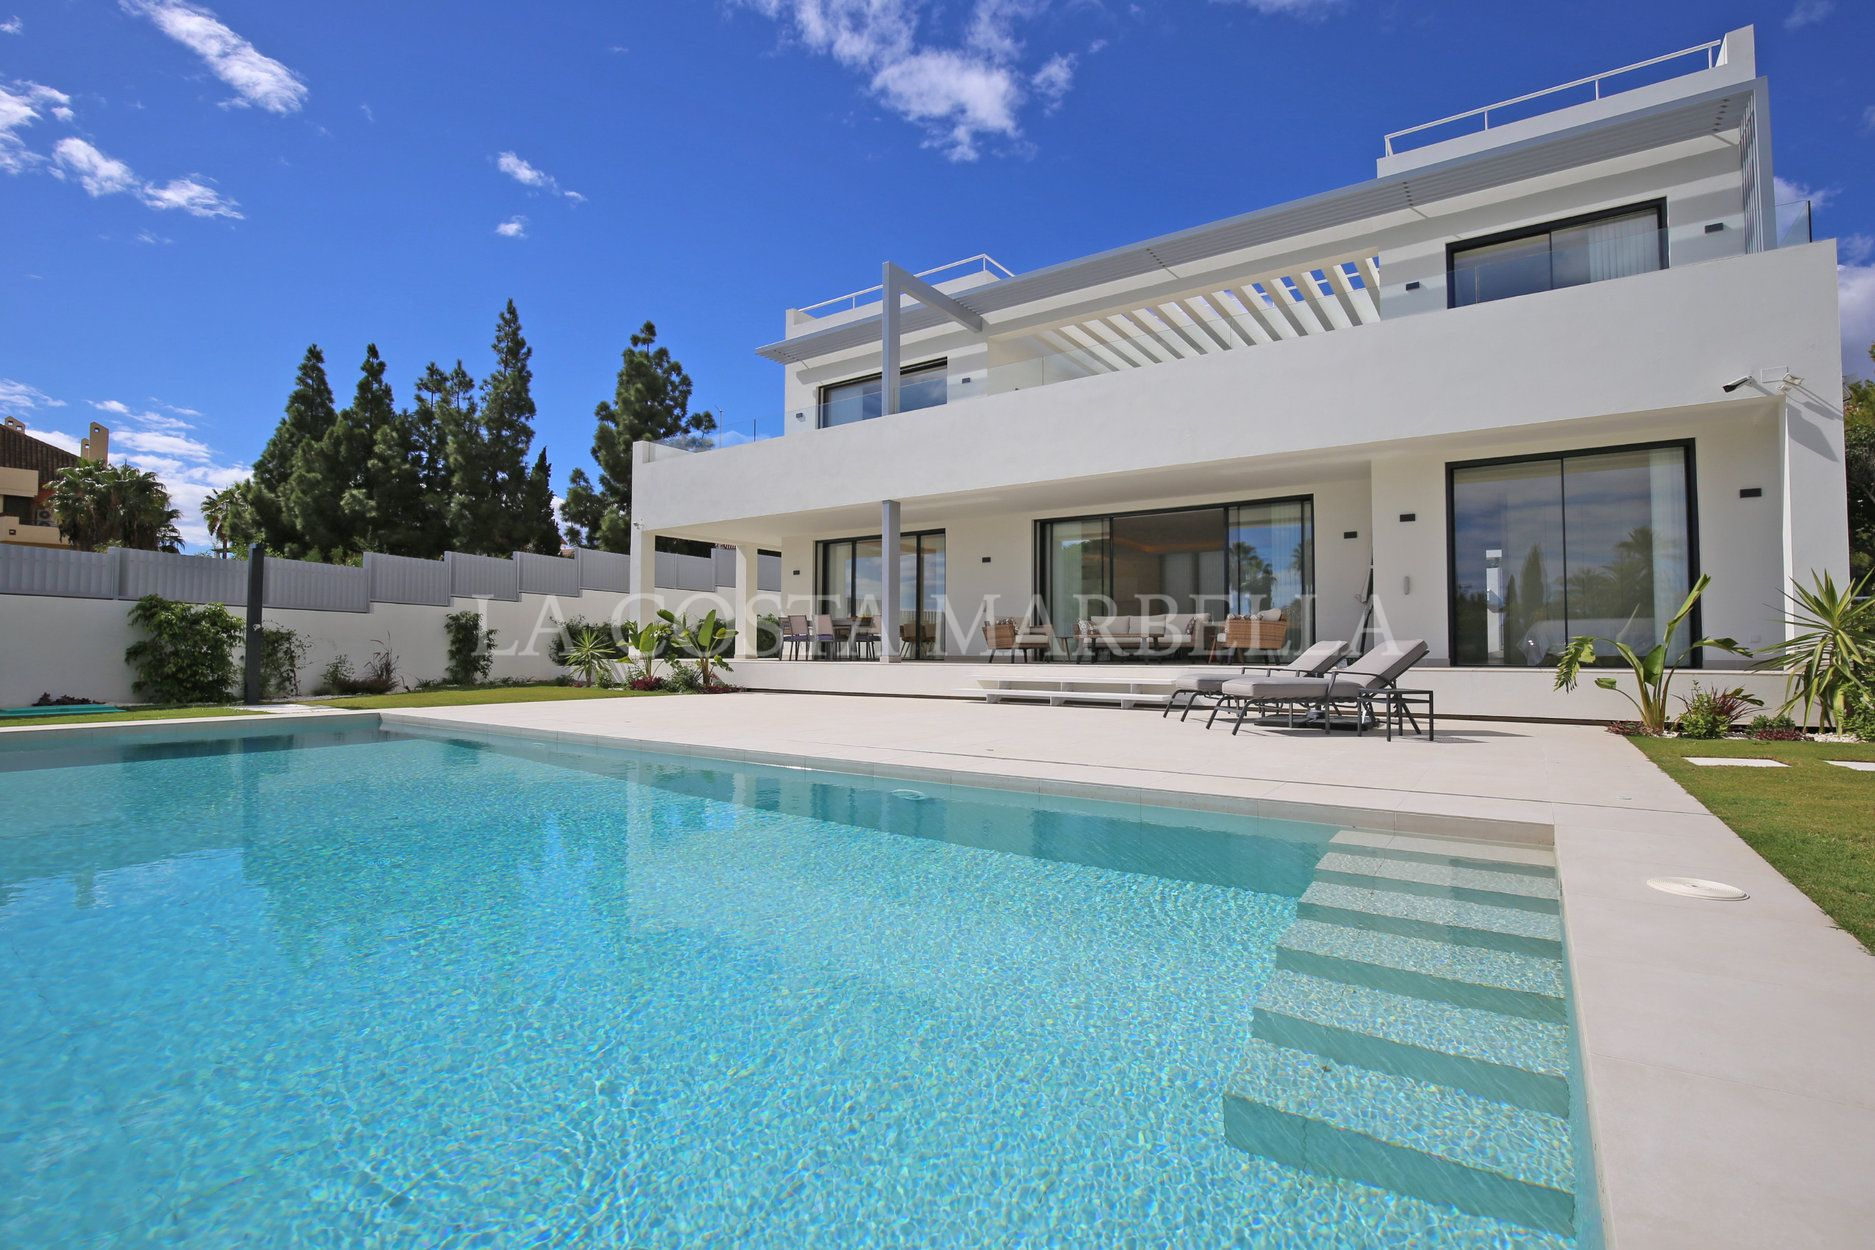 Gfk Pool Sale Villa For Sale In Las Lomas Del Marbella Club Marbella Golden Mile